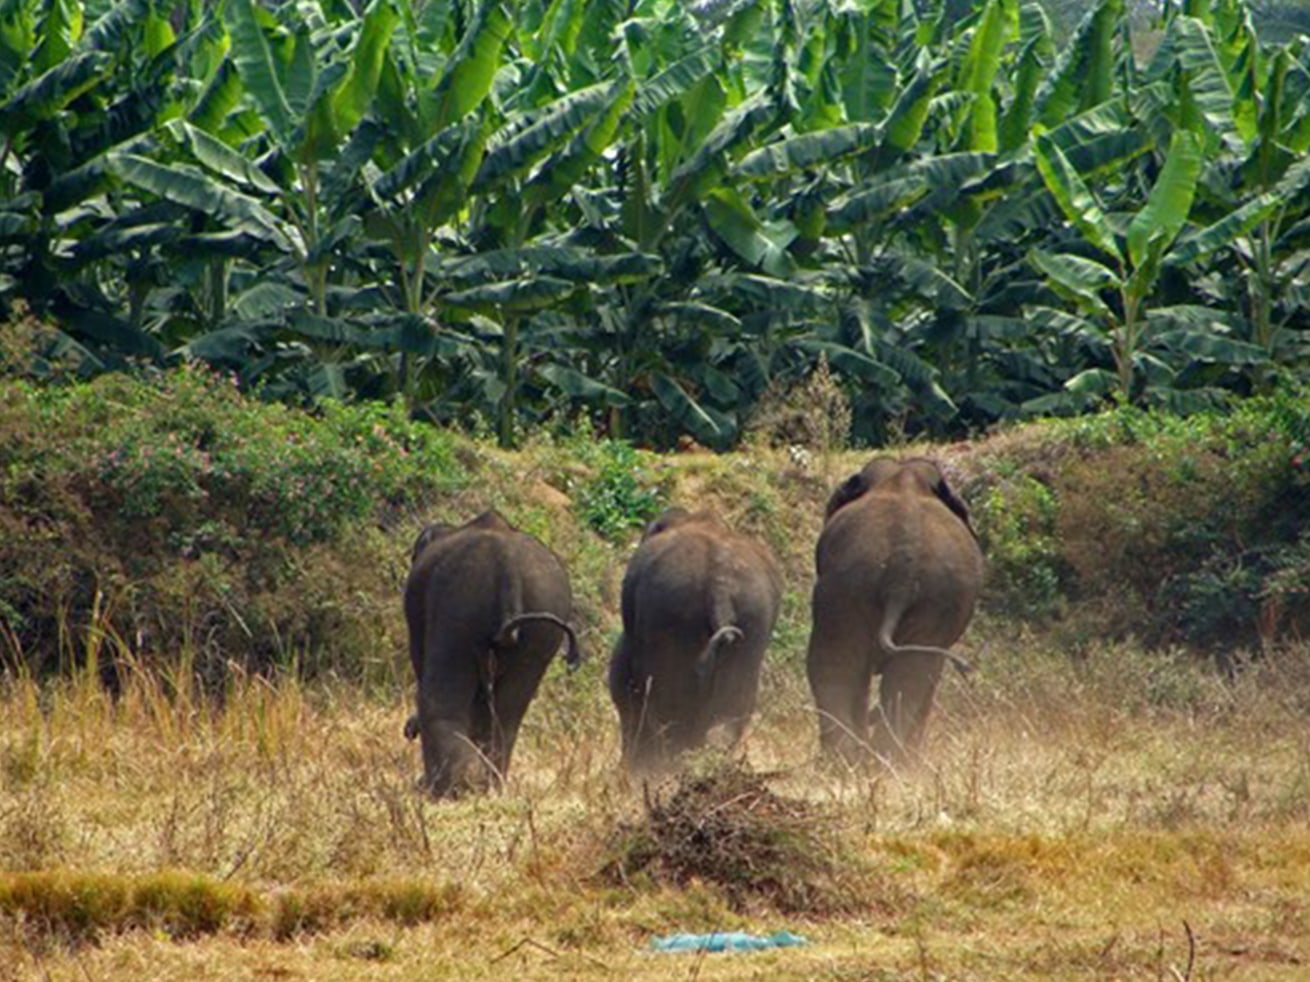 These elephants would love to break the barrier and raid this banana plantation. Photo: Nishant Srinivasaiah